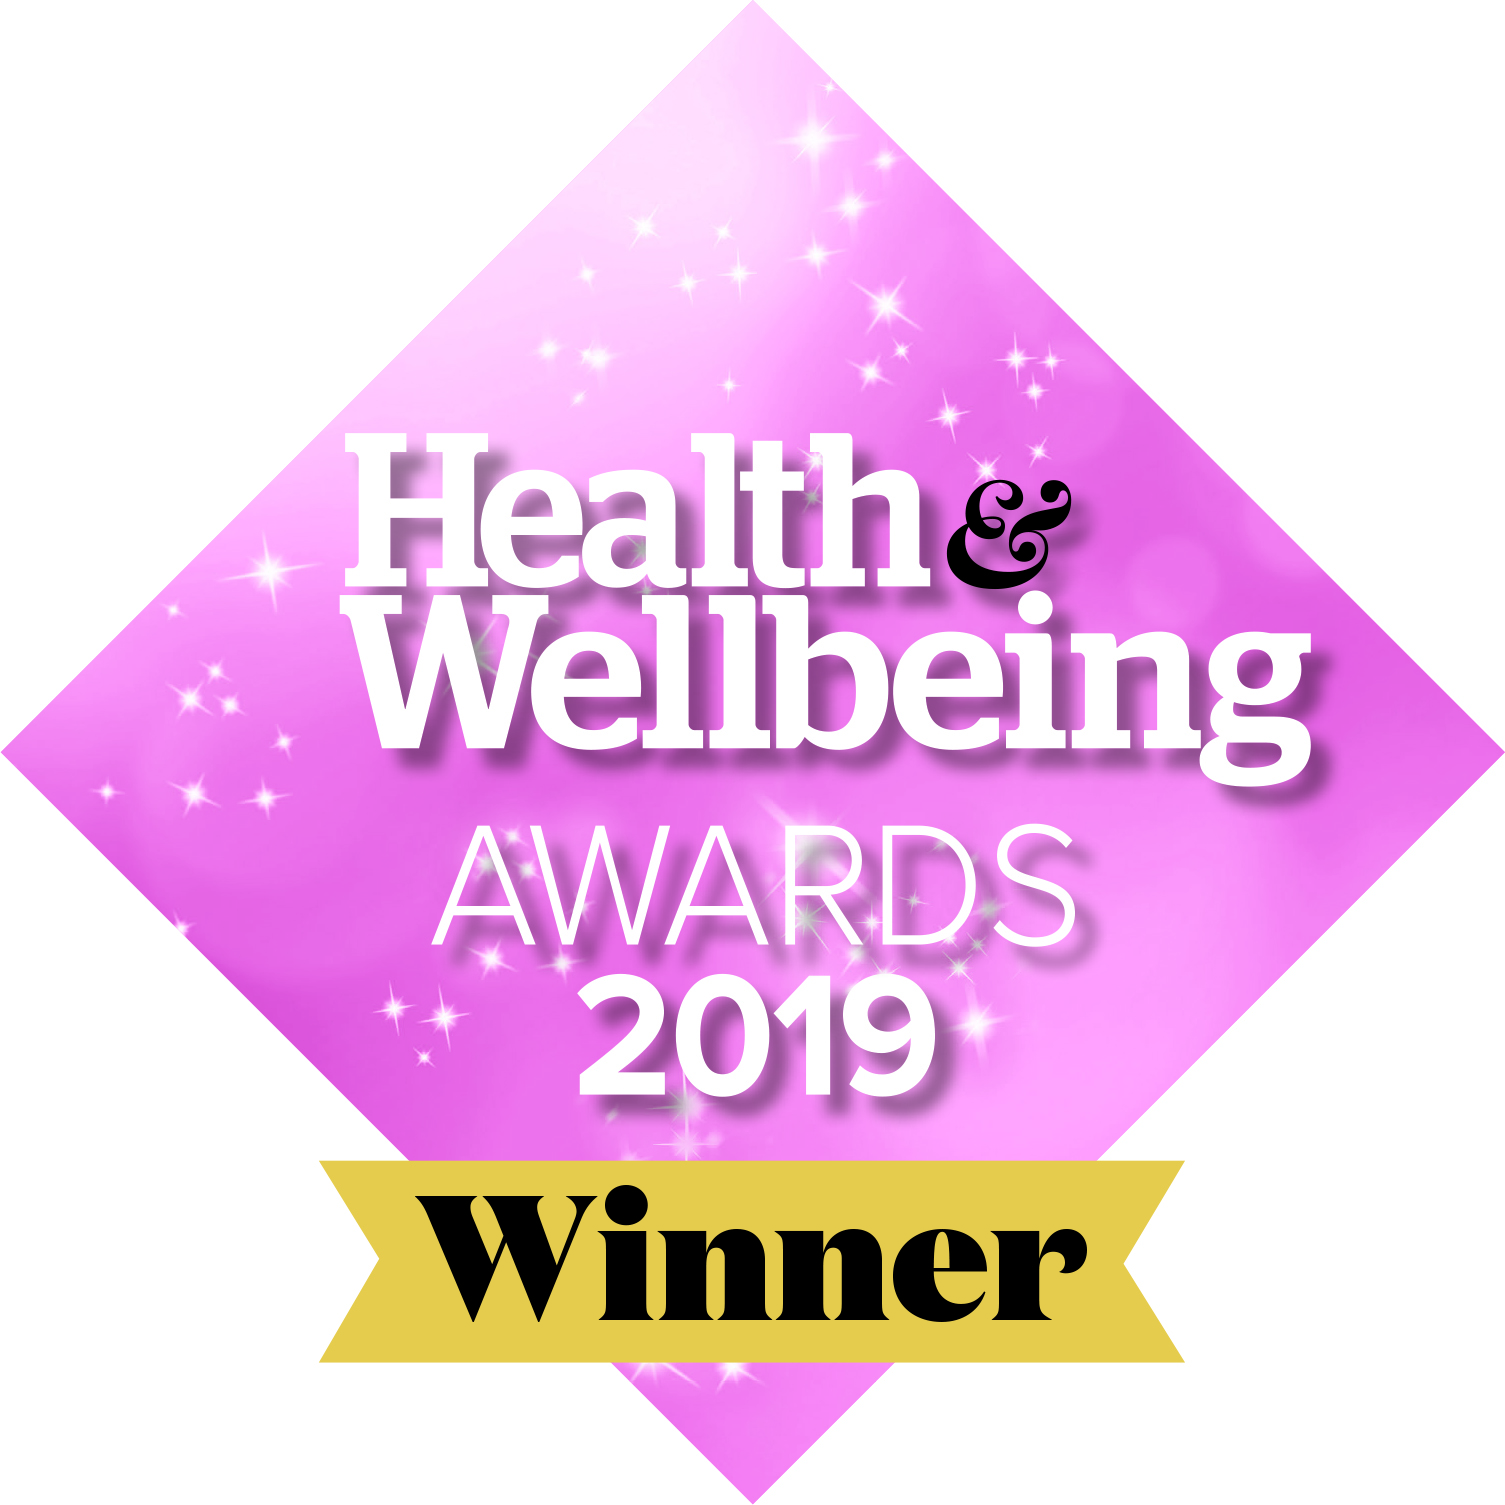 Graphic for Winner of Health & Wellbeing Awards 2019